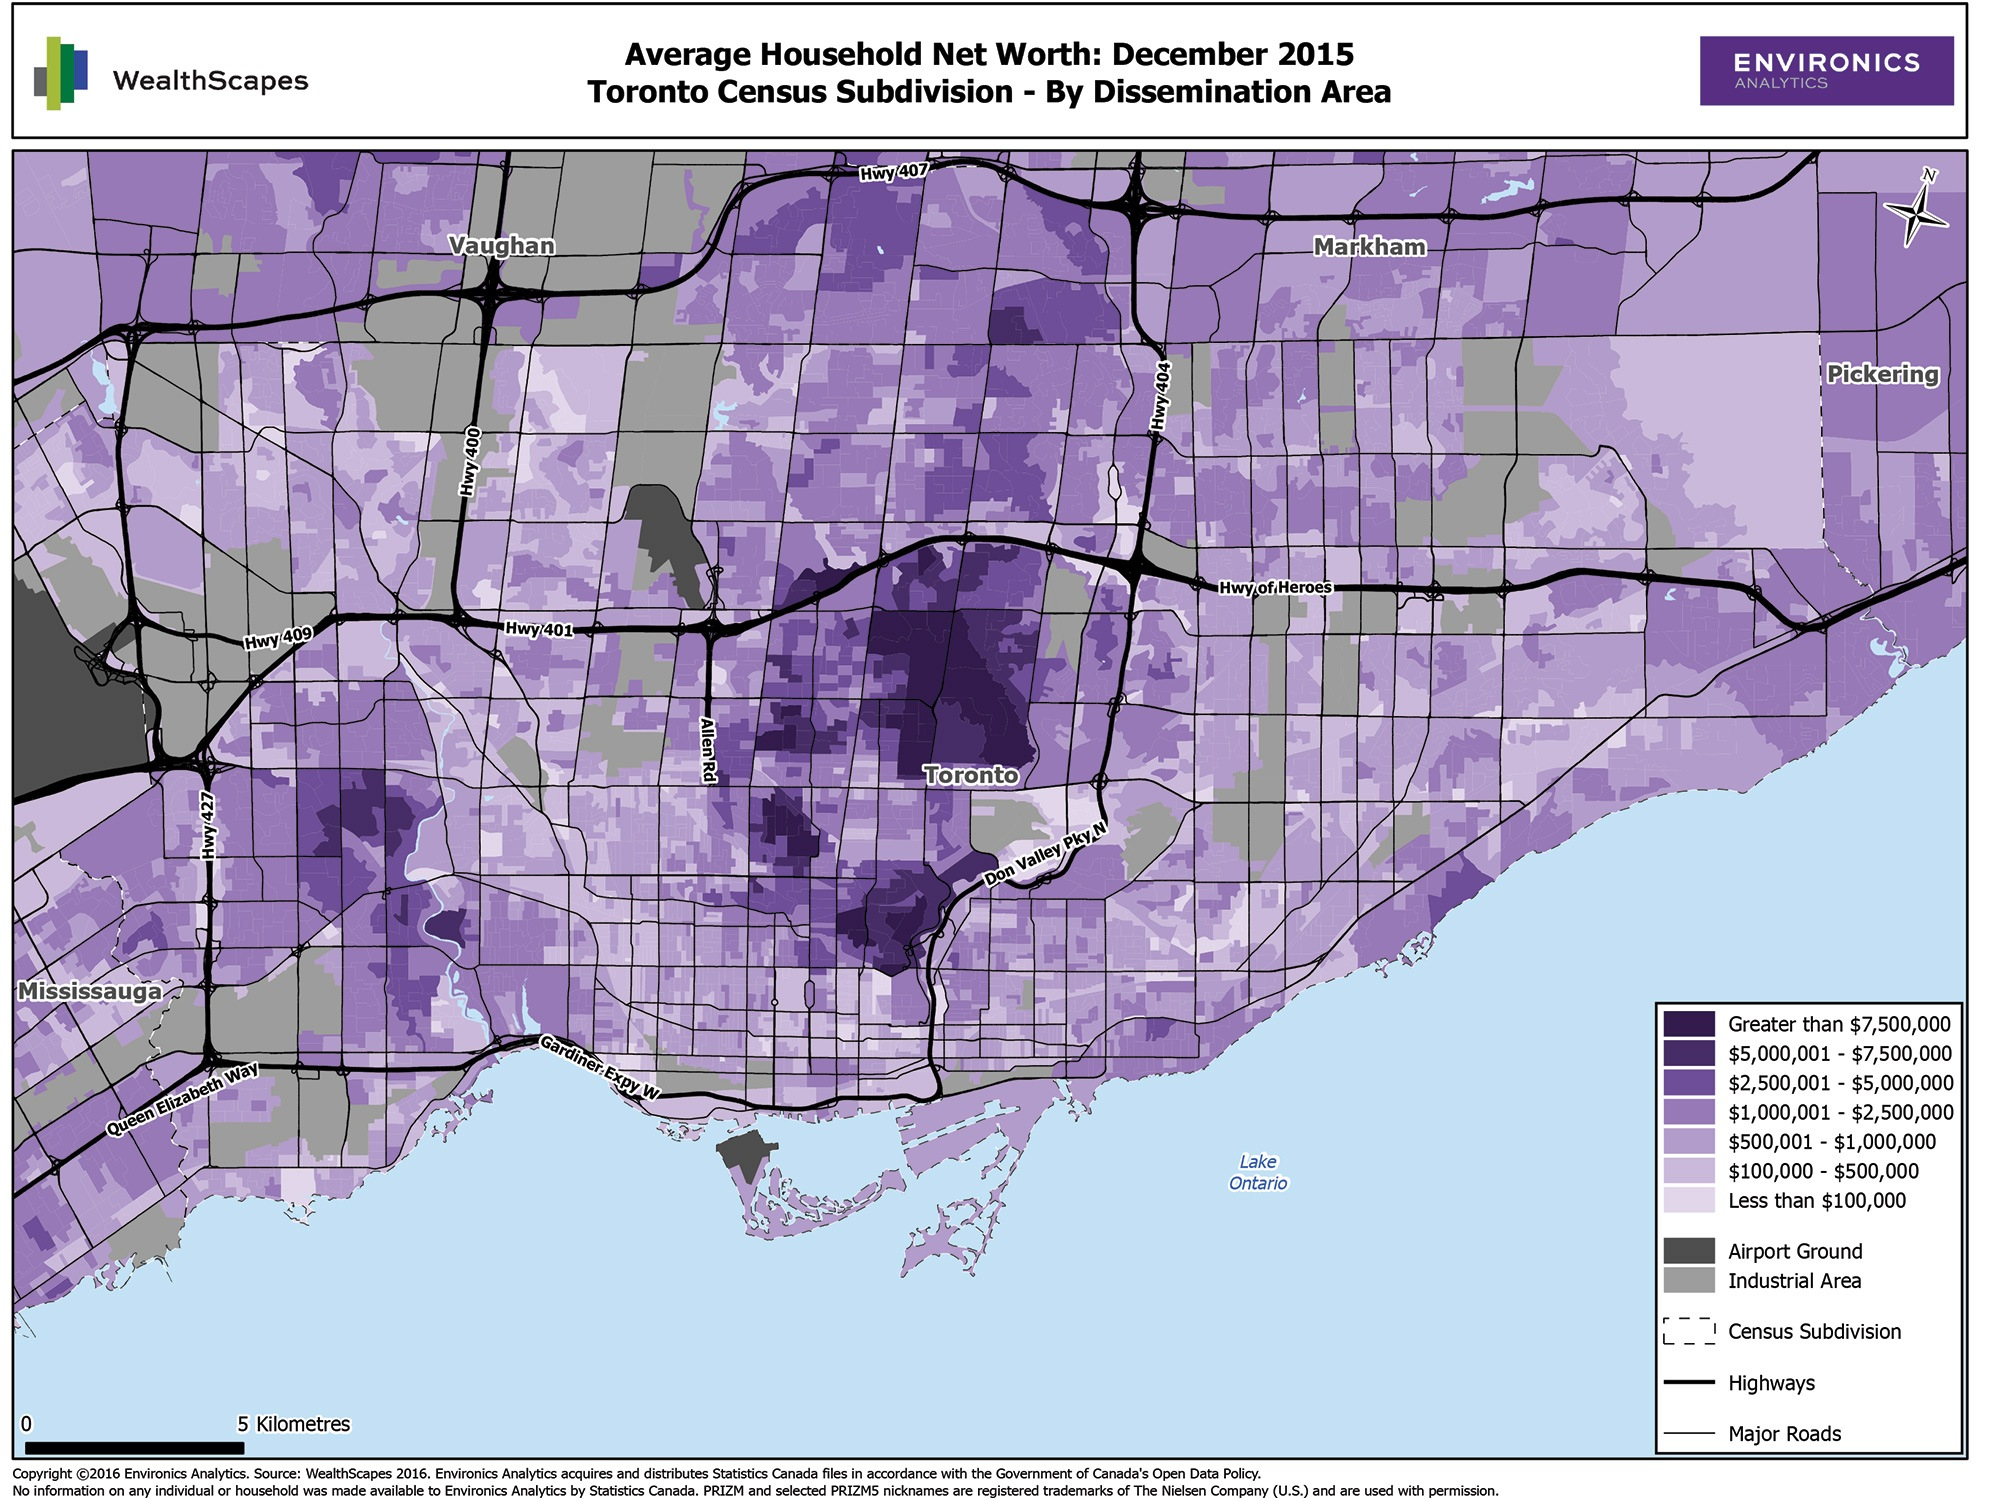 Map of Average Household Net Worth in Toronto Census Subdivision (Environics Analytics)